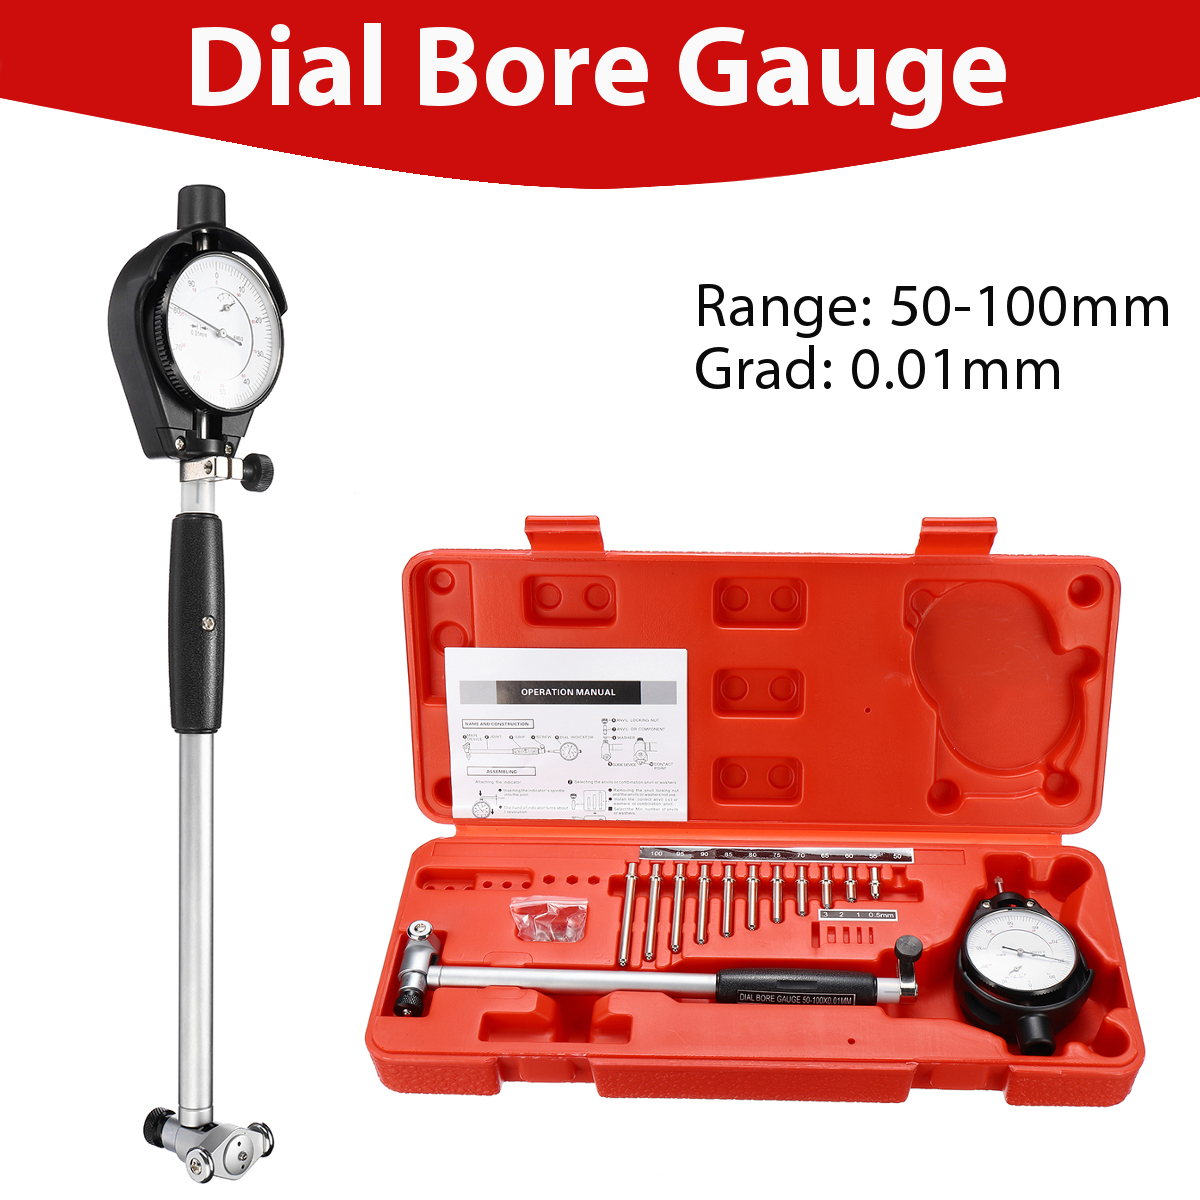 цена на 50-100mm Grad 0.01mm Measuring Indicator Resolution Tool Steel+ABS Range Dial Bore Gauge Movable Probe/Changeable Durability